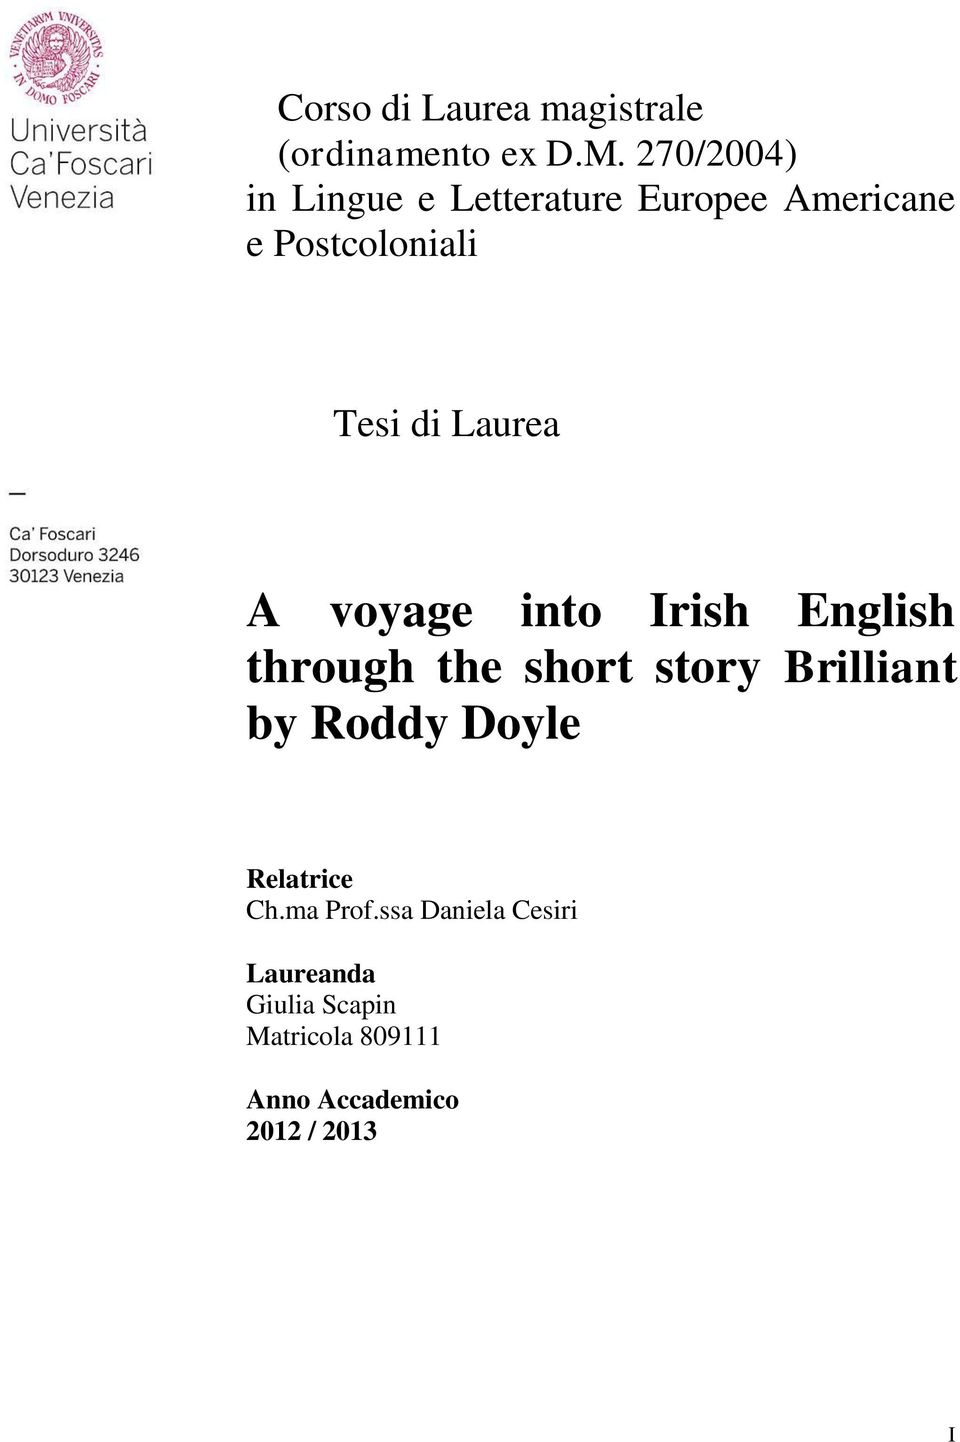 Laurea A voyage into Irish English through the short story Brilliant by Roddy